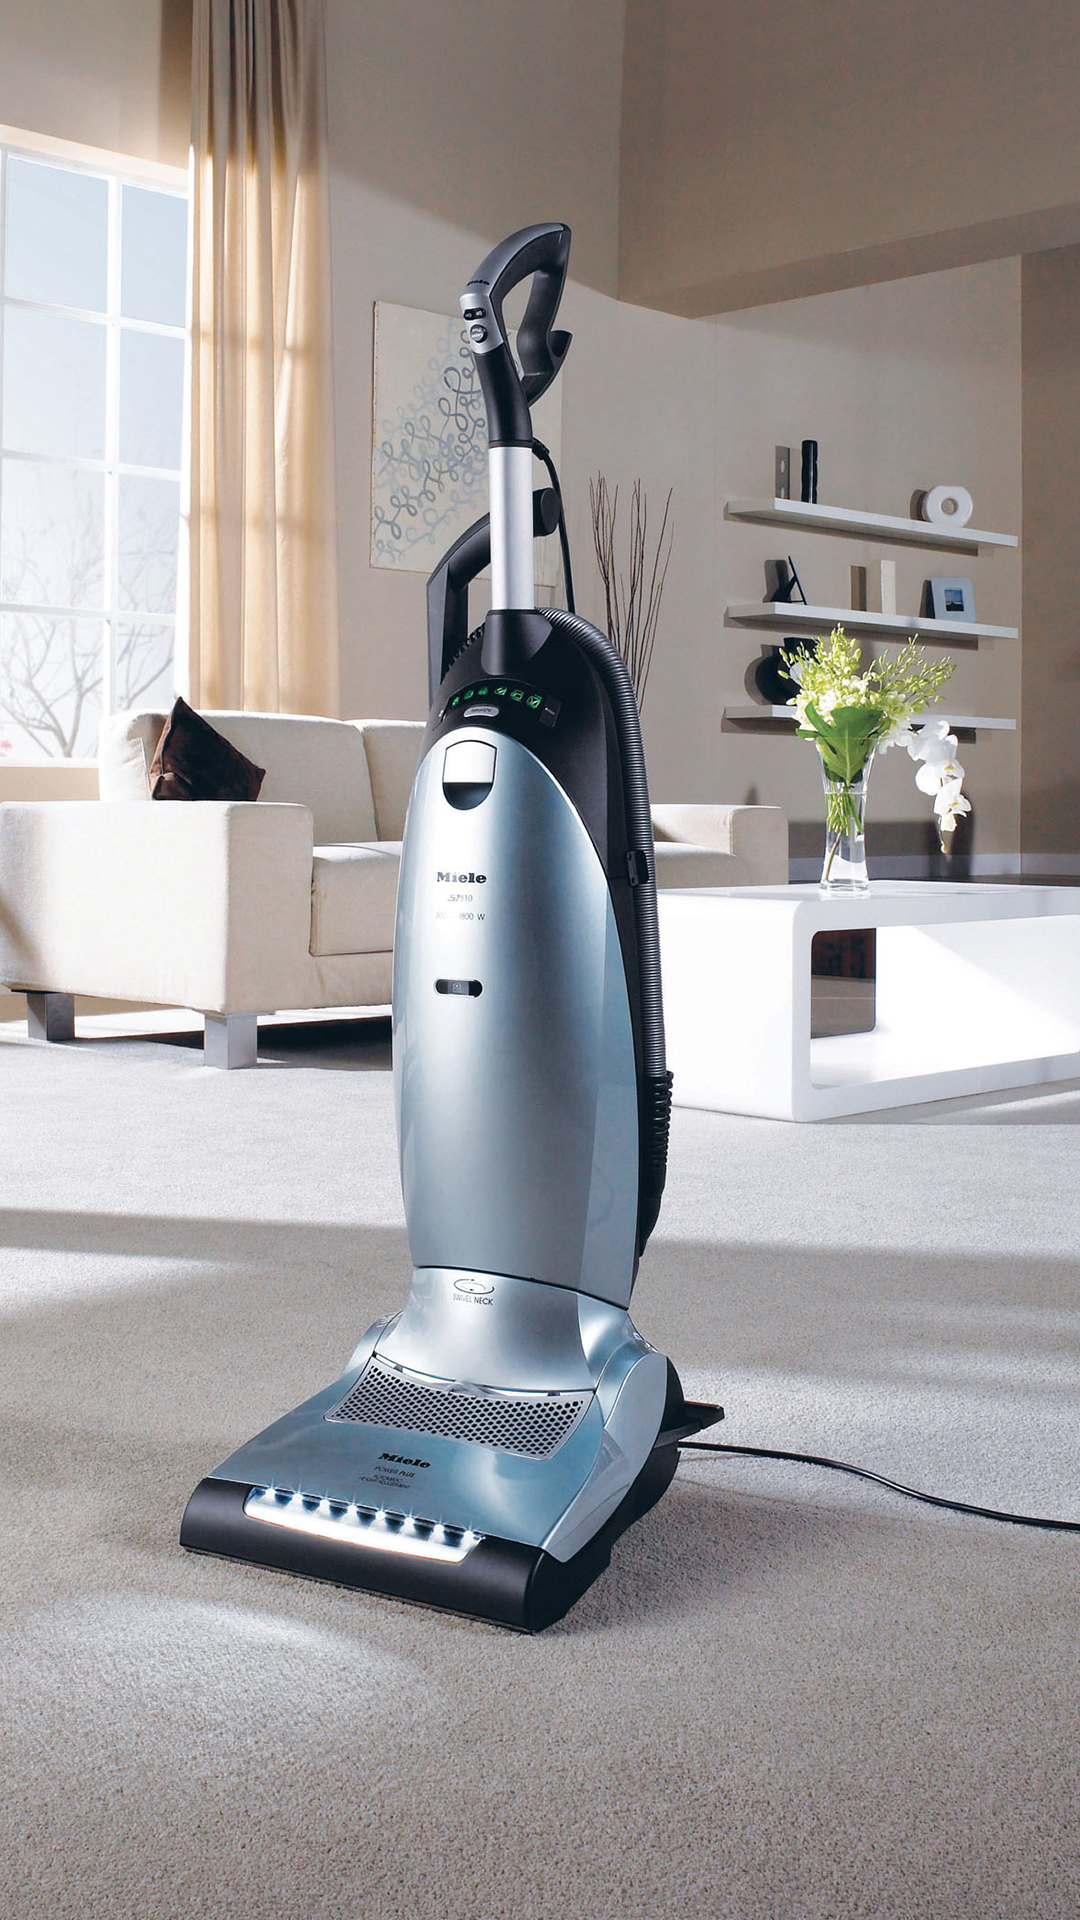 Miele Grand Luxury Vacuum Cleaners